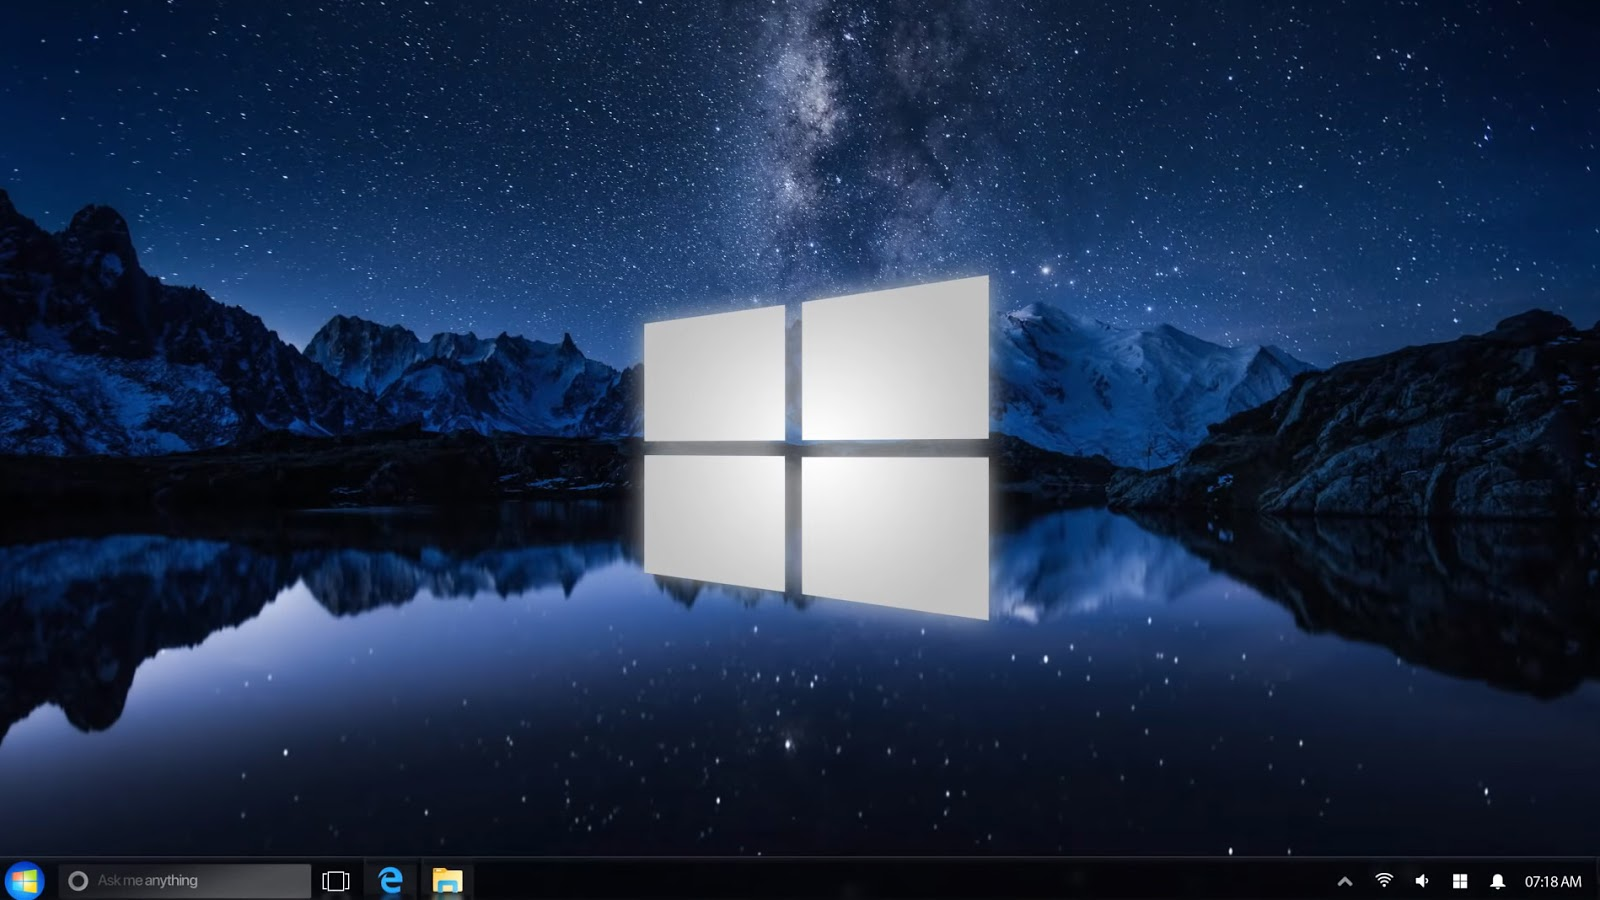 Windows Wallpaper paling banyak di bajak